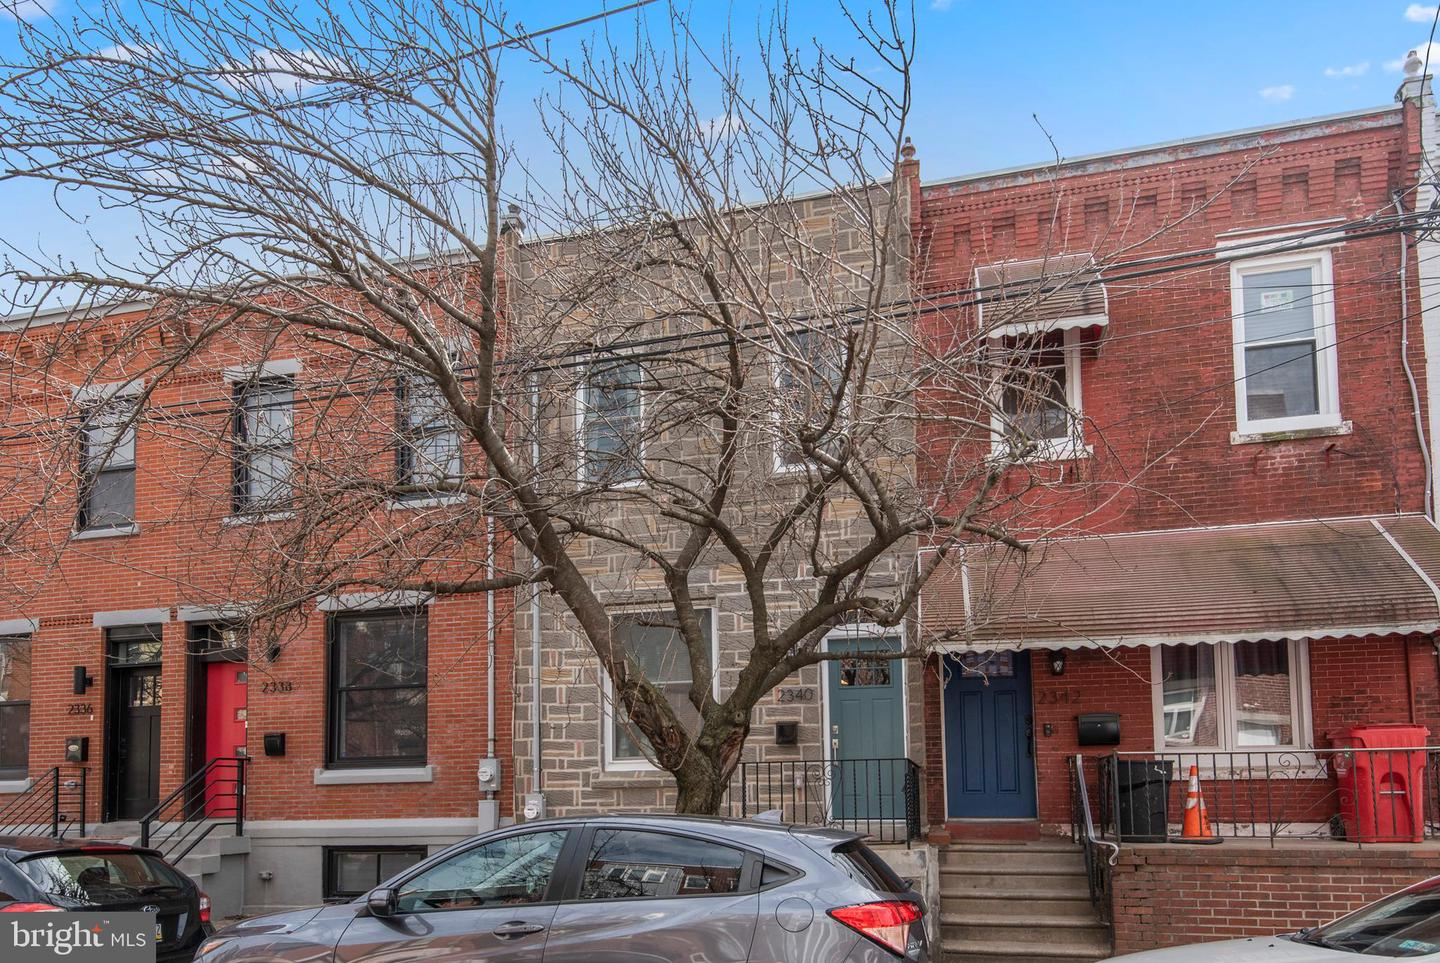 2340 W Thompson Street Philadelphia, PA 19121